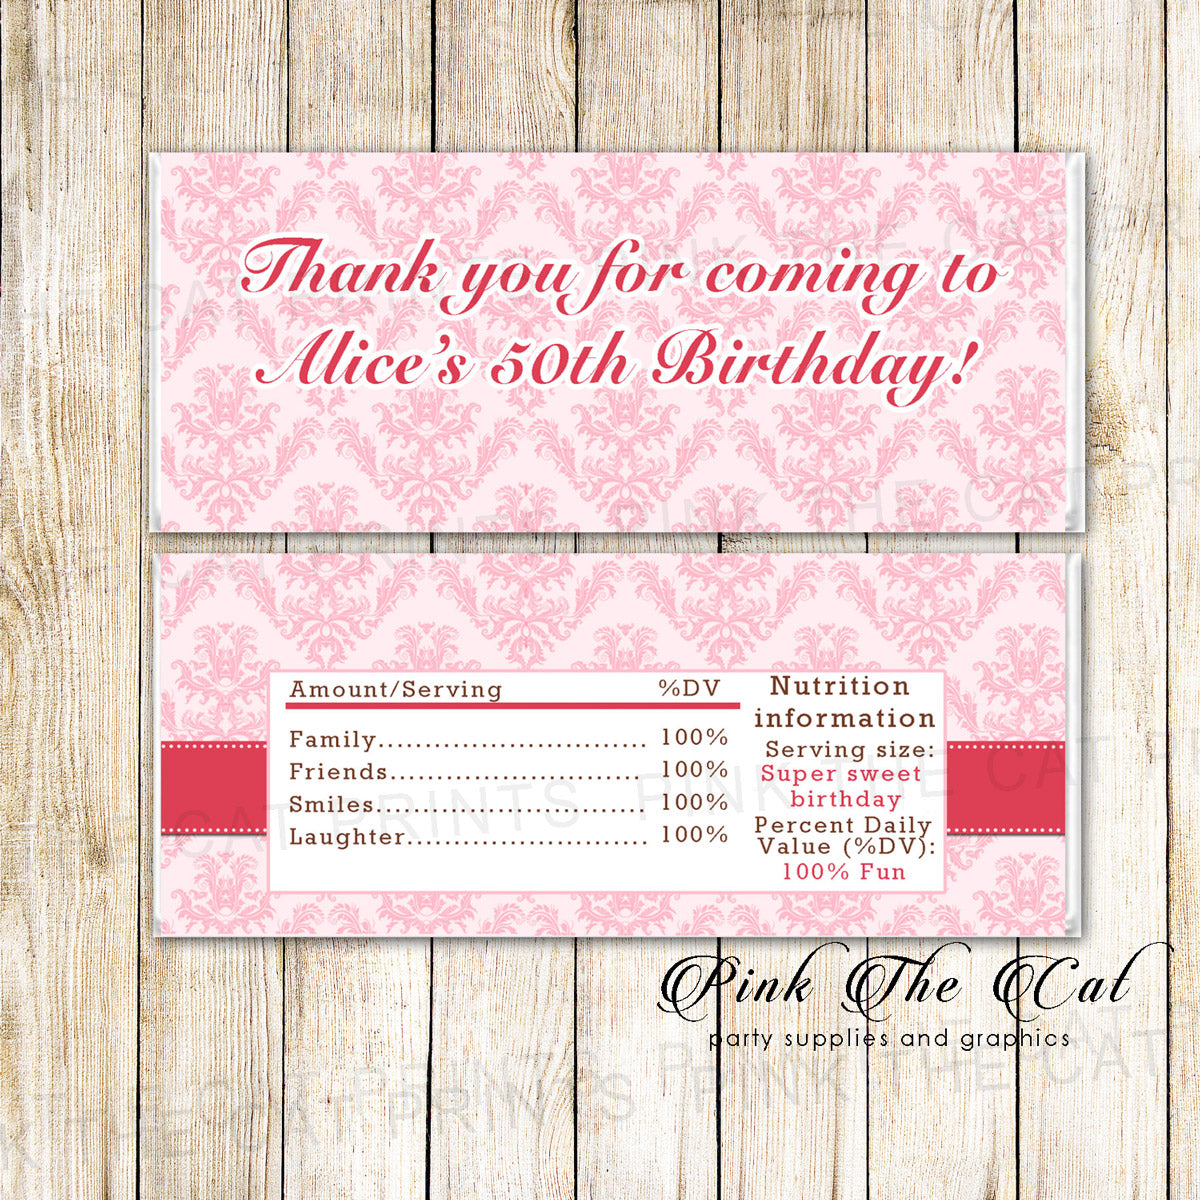 This is an image of Free Printable Birthday Candy Bar Wrappers intended for father's day